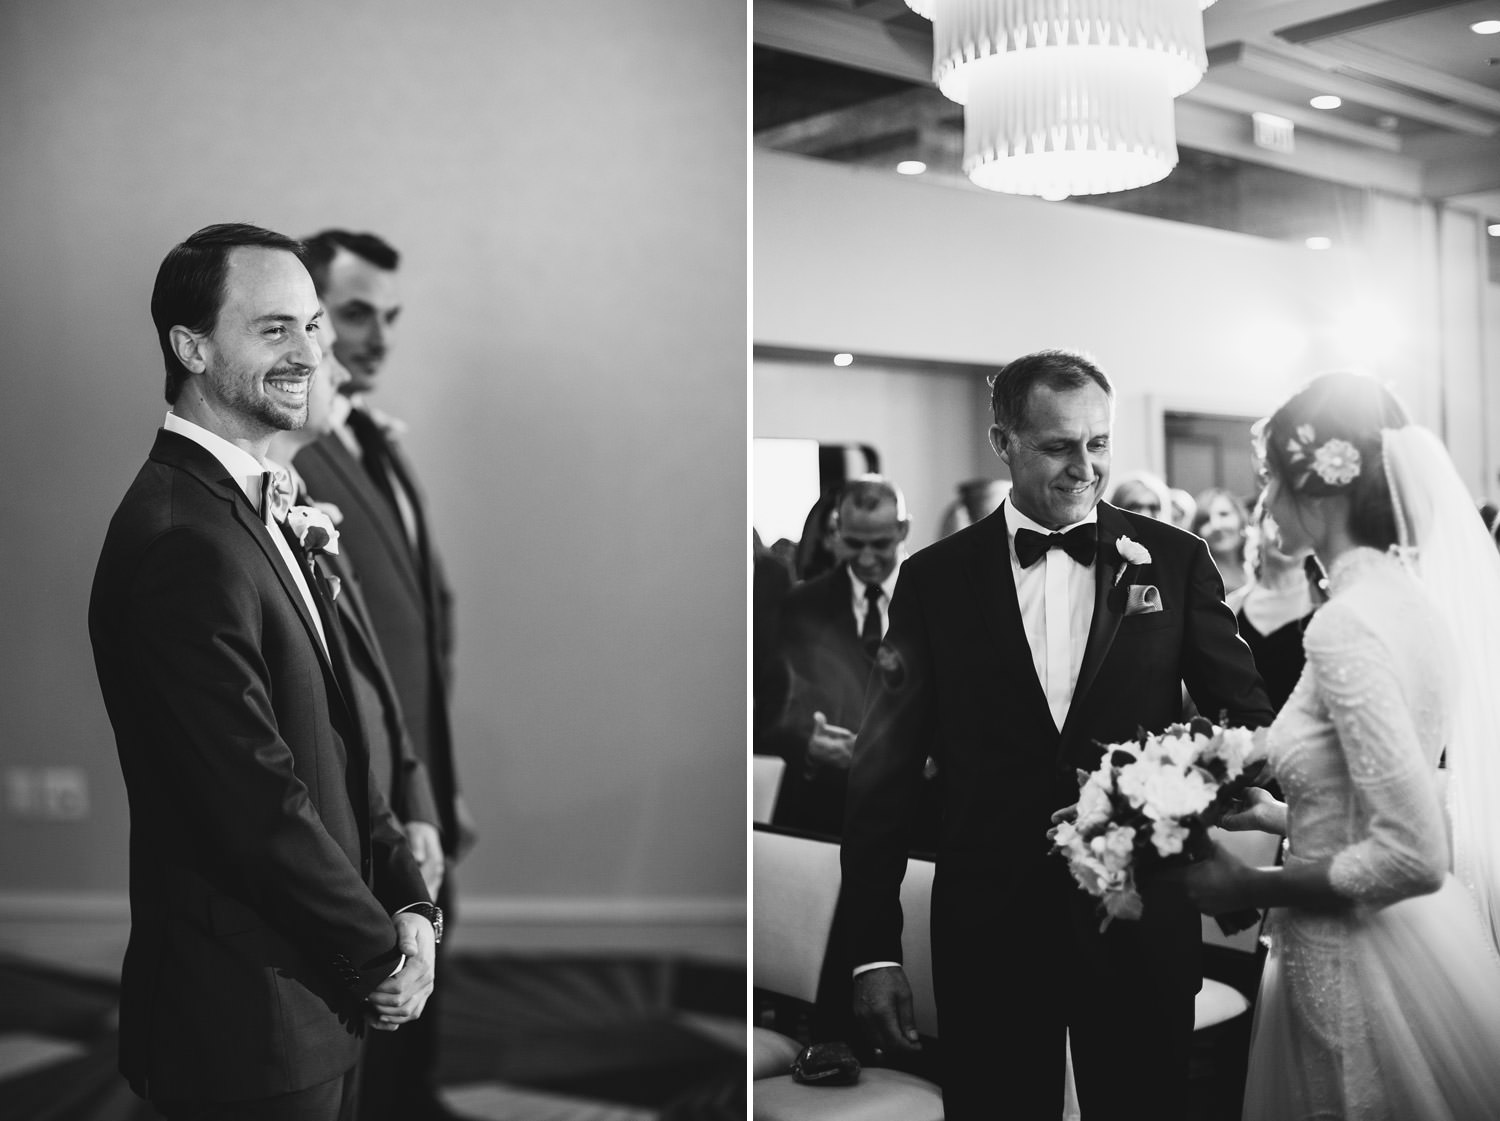 Picture of the groom looking at the bride walking down with her father. Photographed at hotel Gray in Chicago